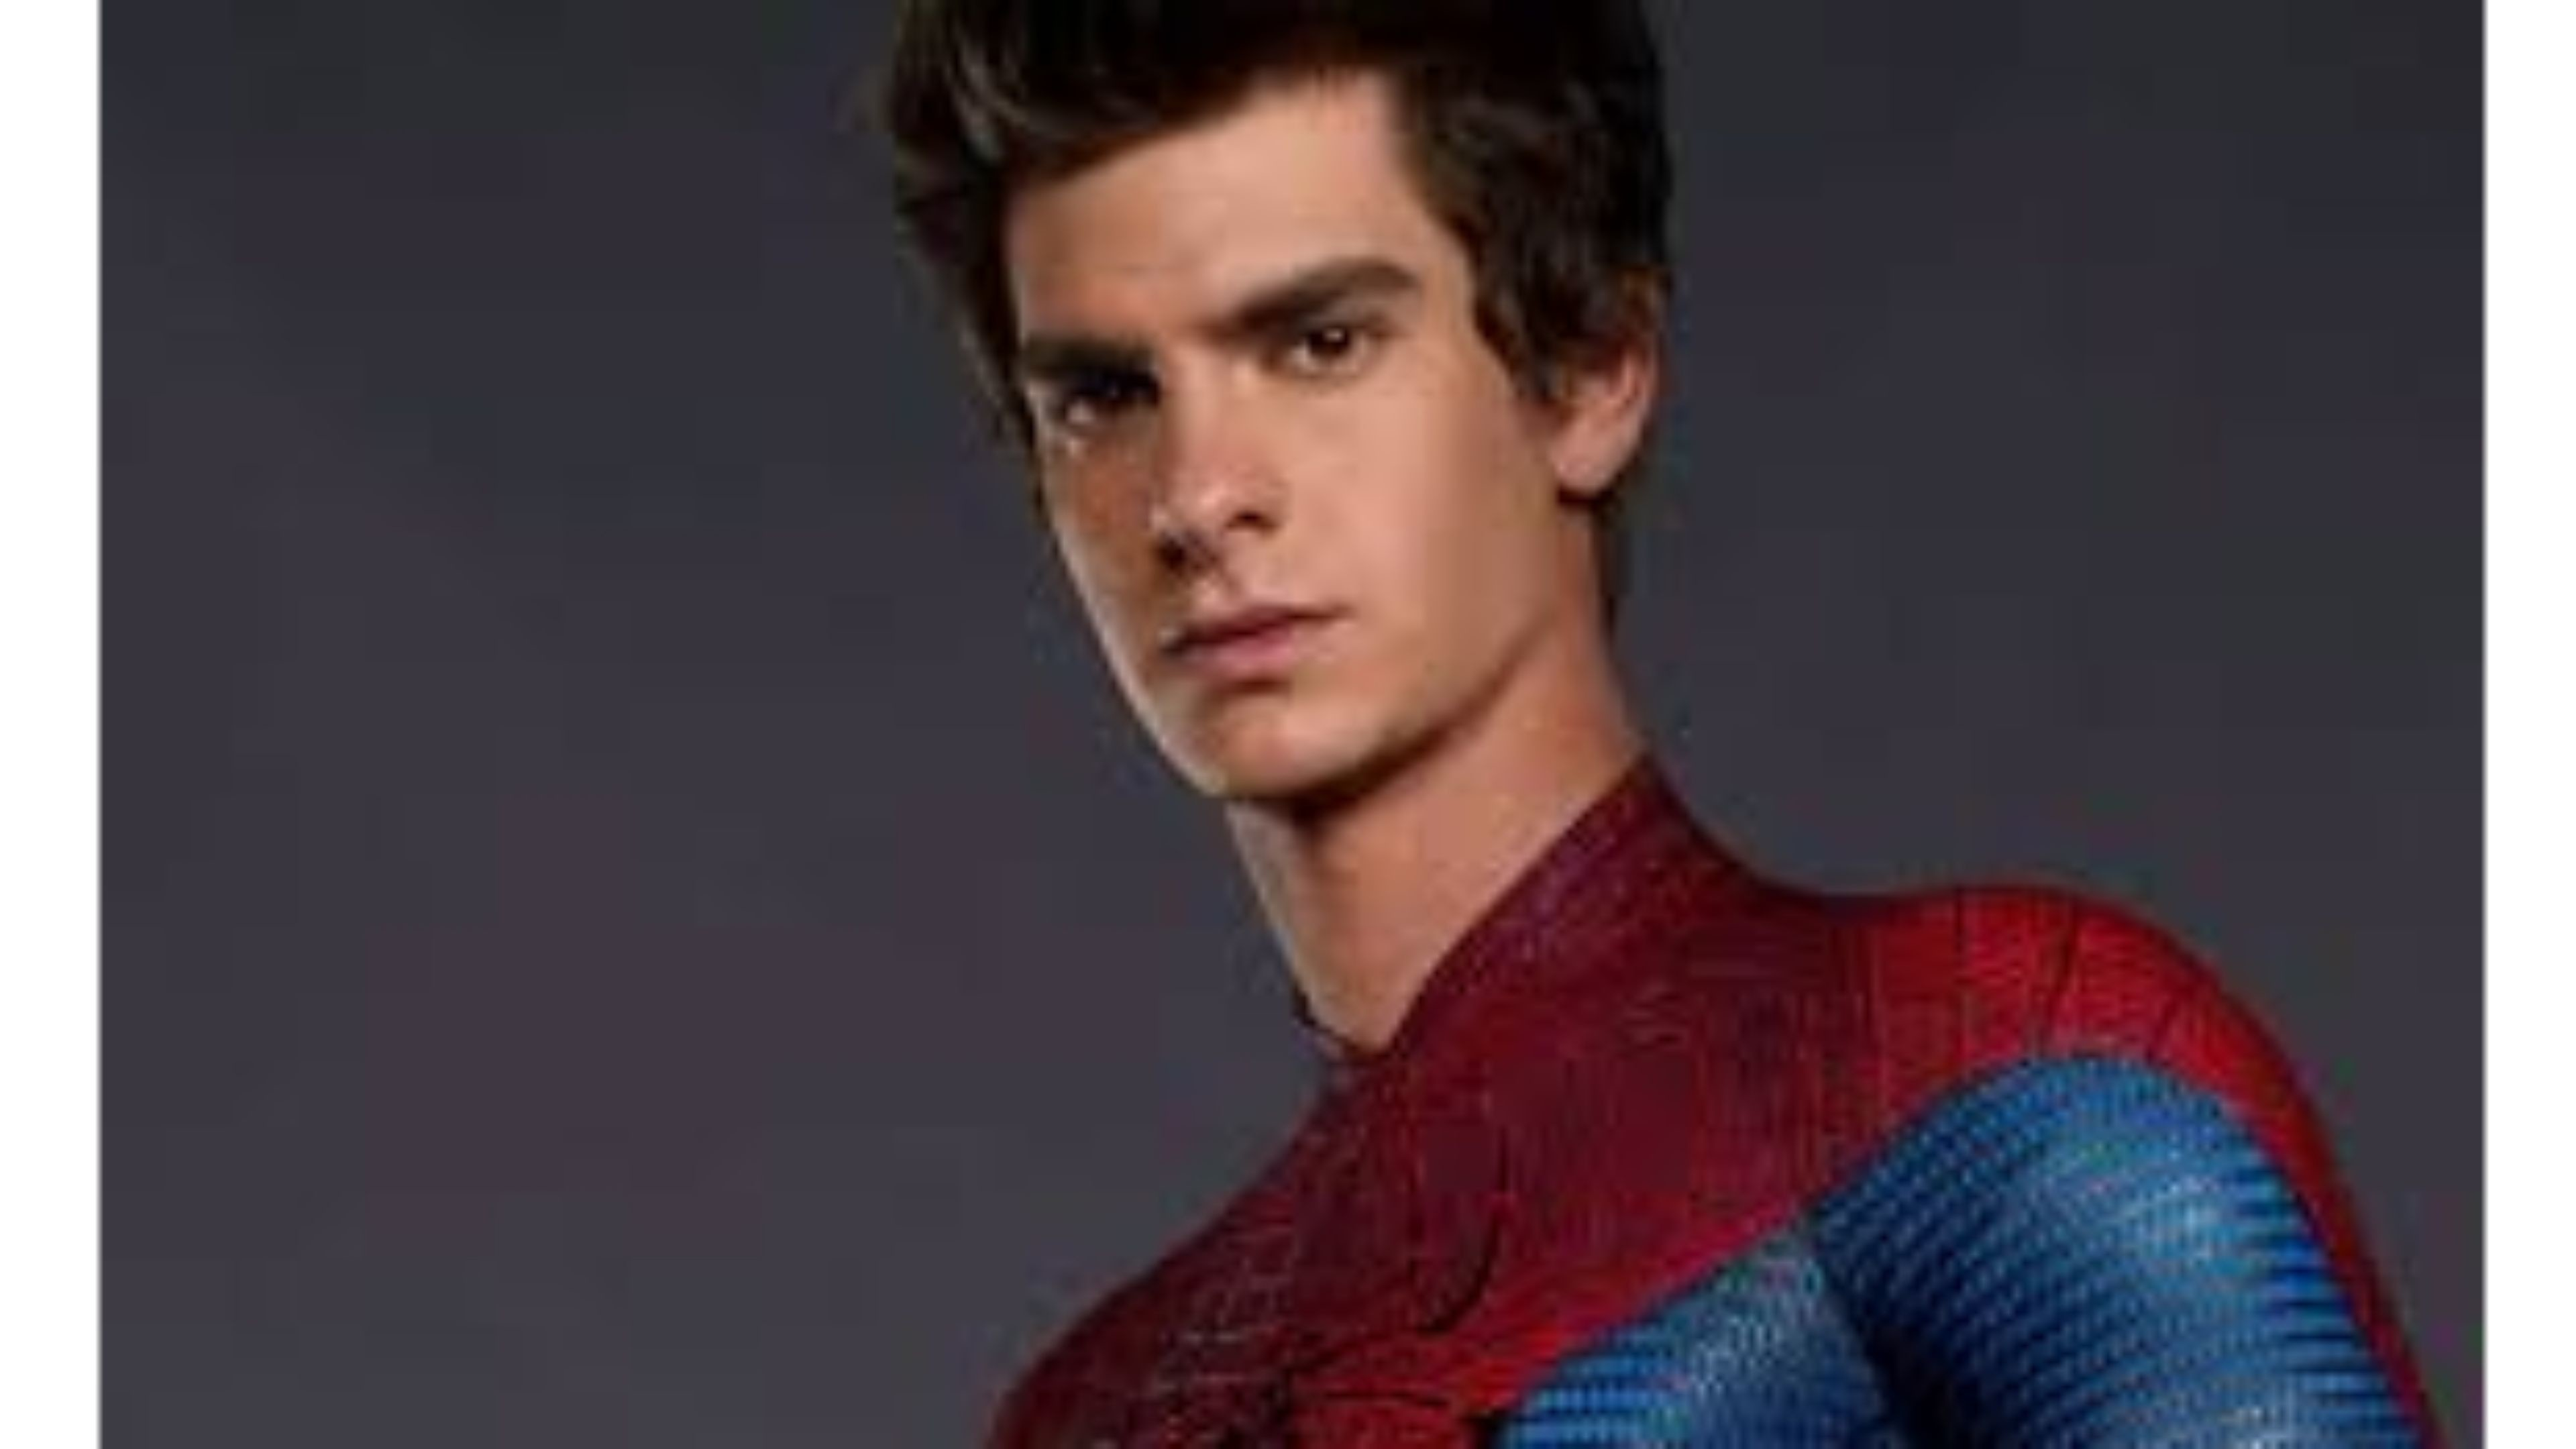 3840x2160 Spiderman 4K Andrew Garfield Wallpaper